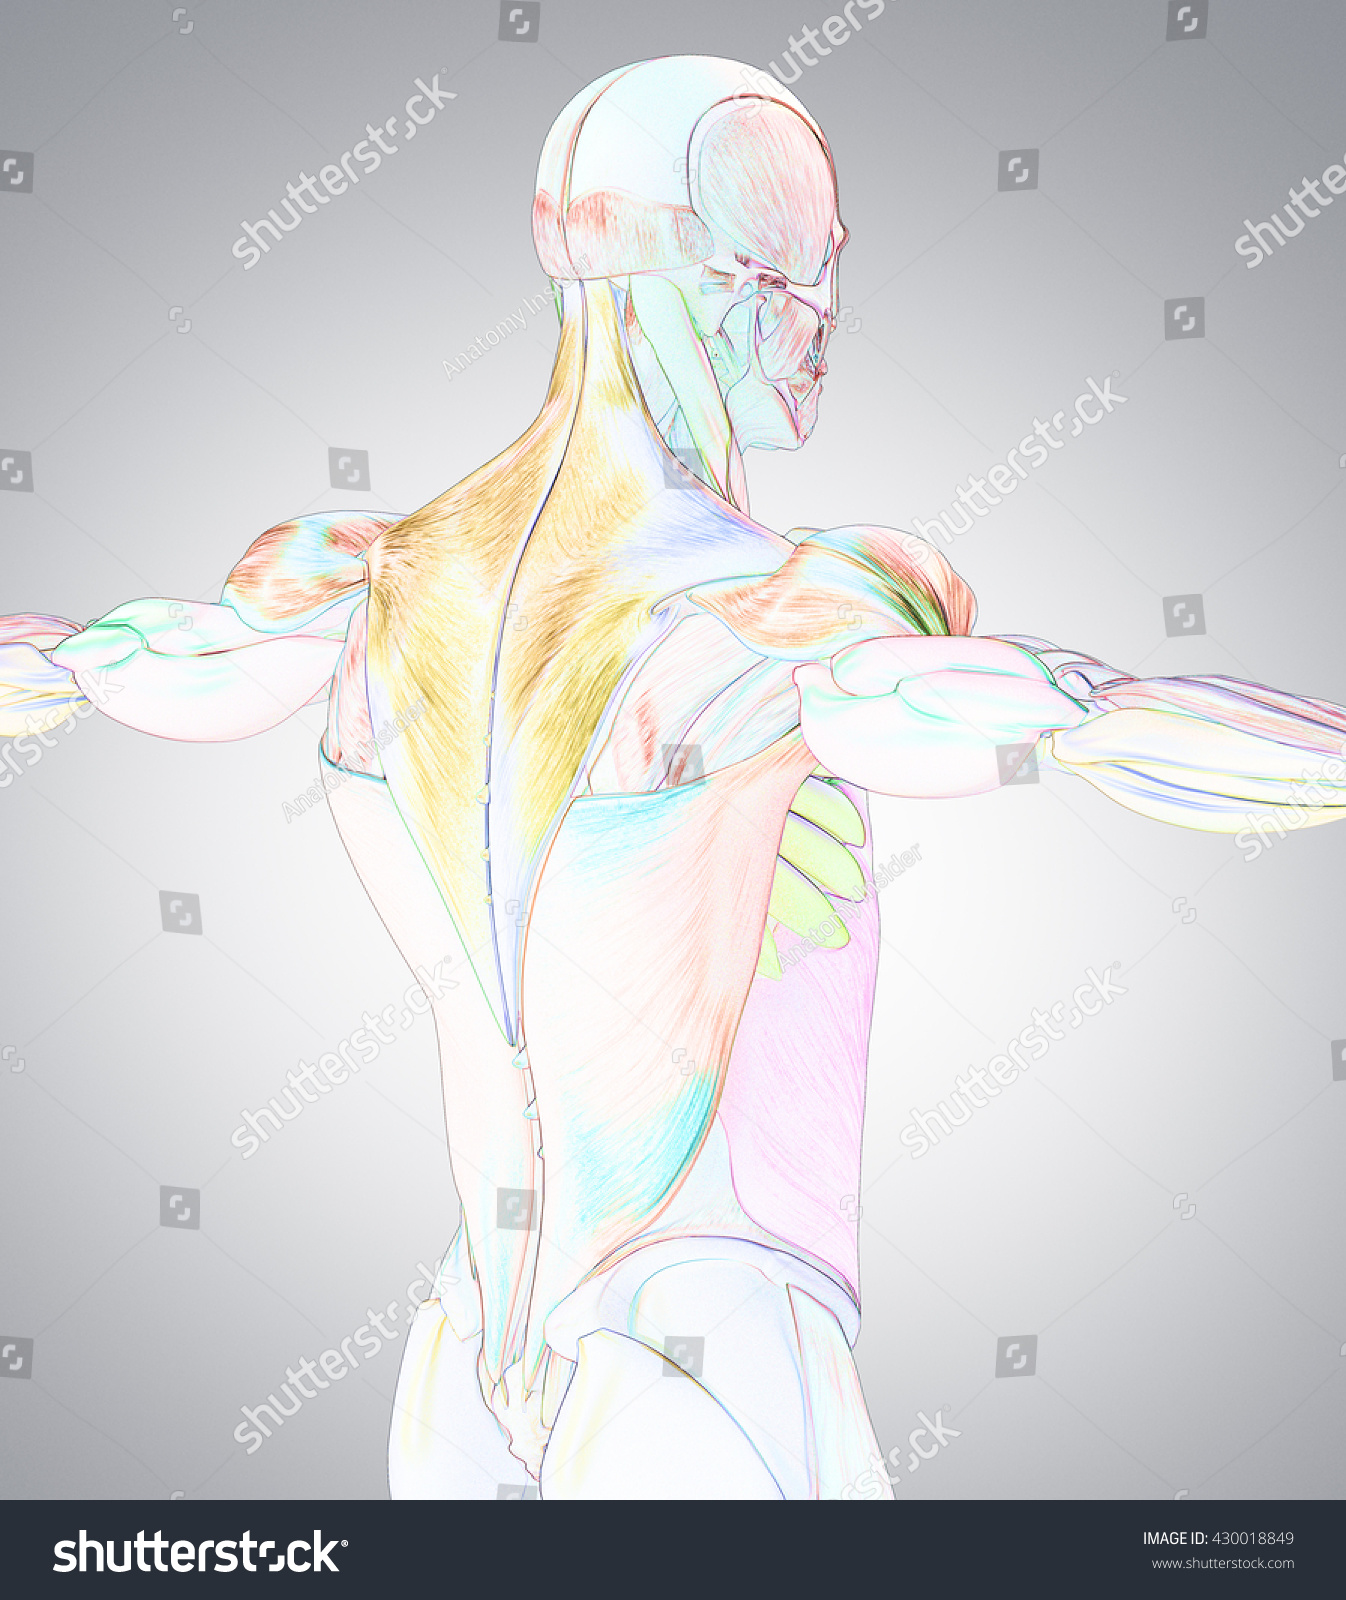 Human Anatomy Muscle Groups Muscle Layout Stock Illustration